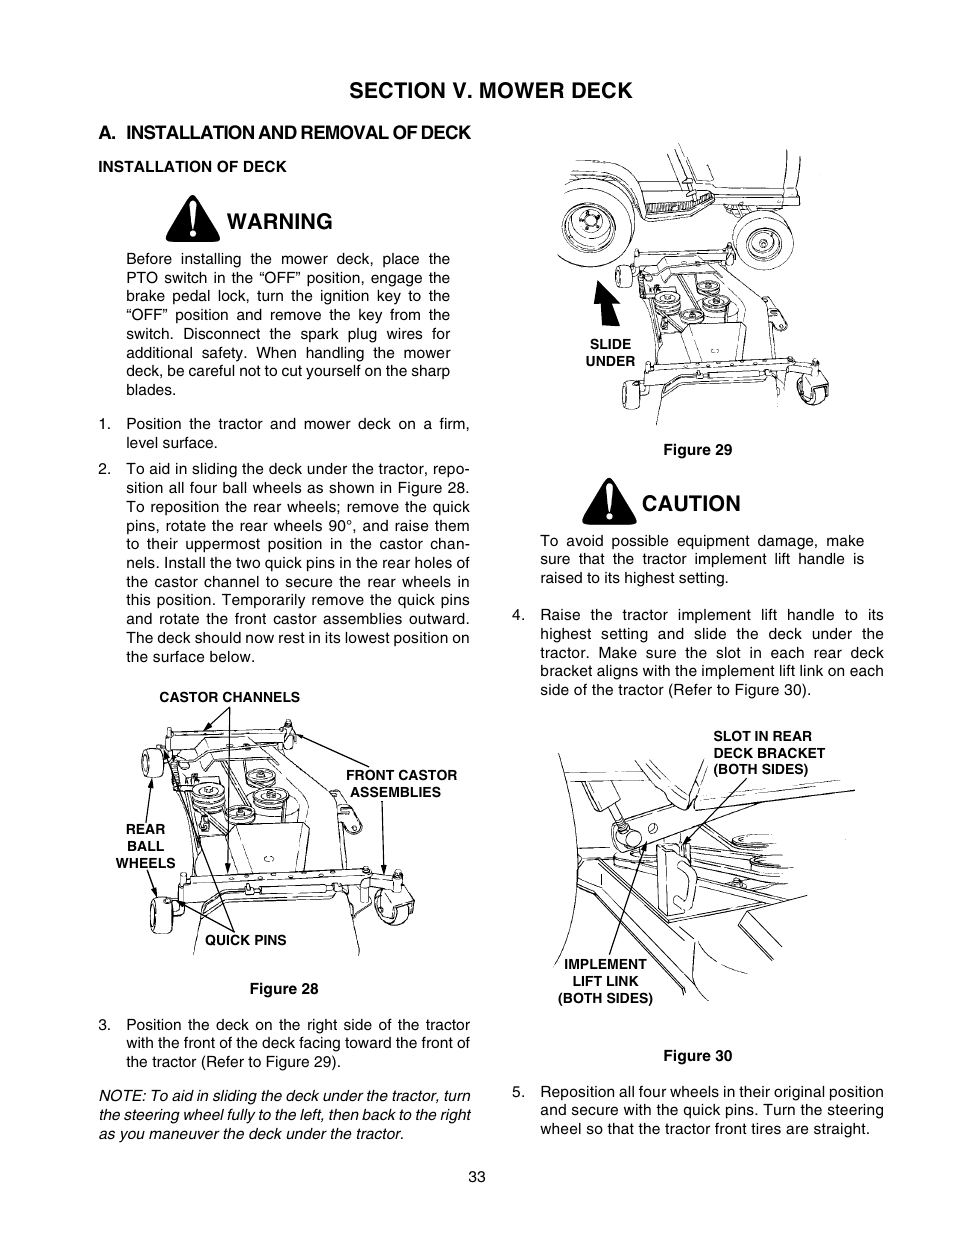 2206 Cub Cadet Wiring Schematic Trusted Schematics Diagram For 782 Warning Caution User Manual Page 33 60